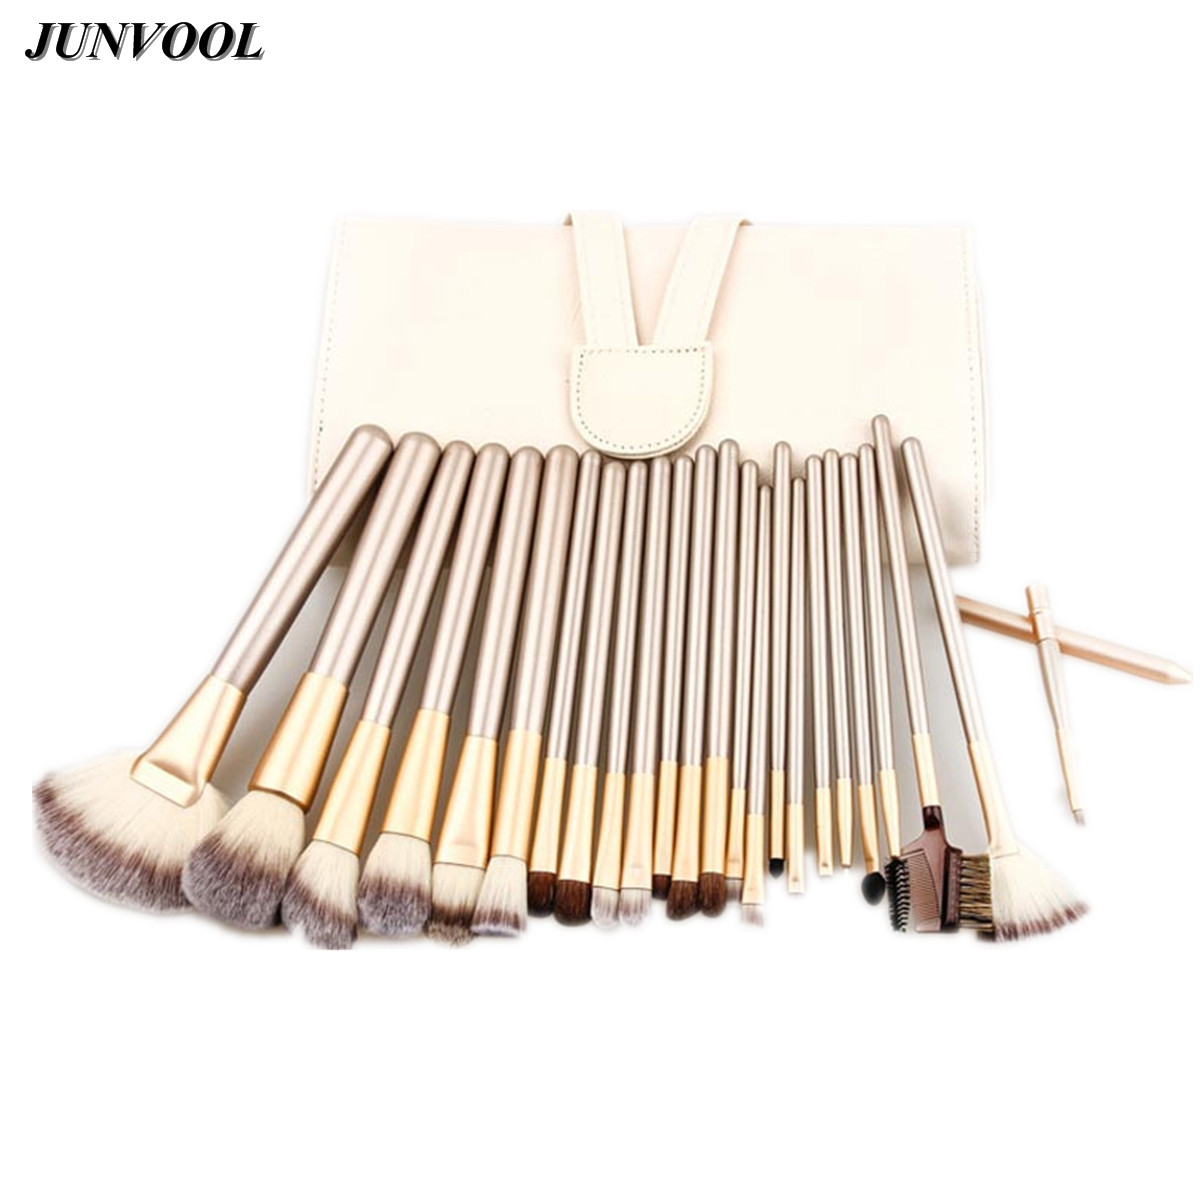 Gold 24pcs Brown Makeup Brushes Professional Powder Foundation Brush Set Cosmetic Make Up Tool Blush Brush with Bag High Quality 24pcs makeup brushes set cosmetic make up tools set fan foundation powder brush eyeliner brushes leather case with pink puff